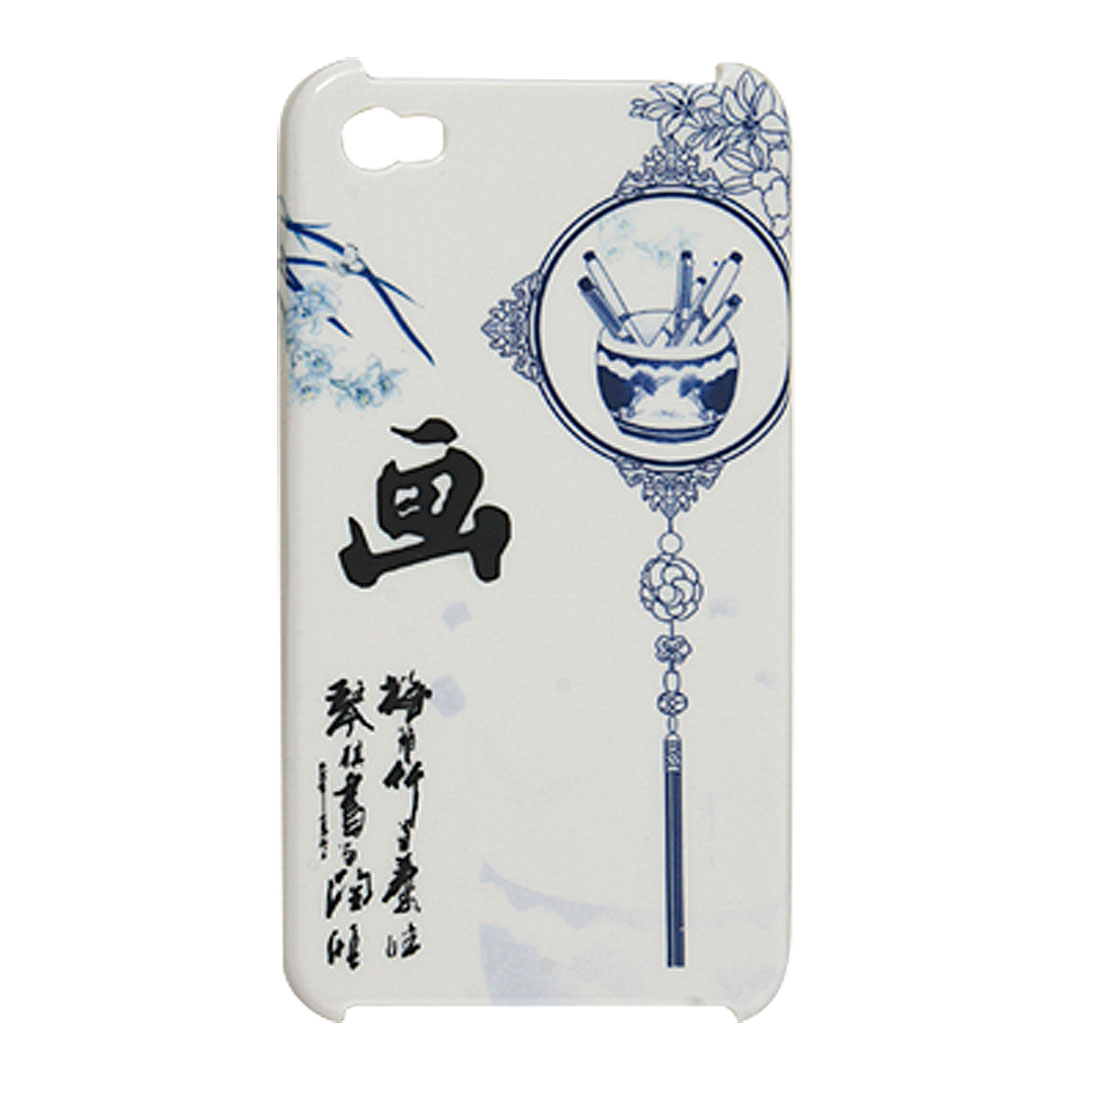 Hard Chinoiserie Painting Style Plastic Back Cover for iPhone 4 4G